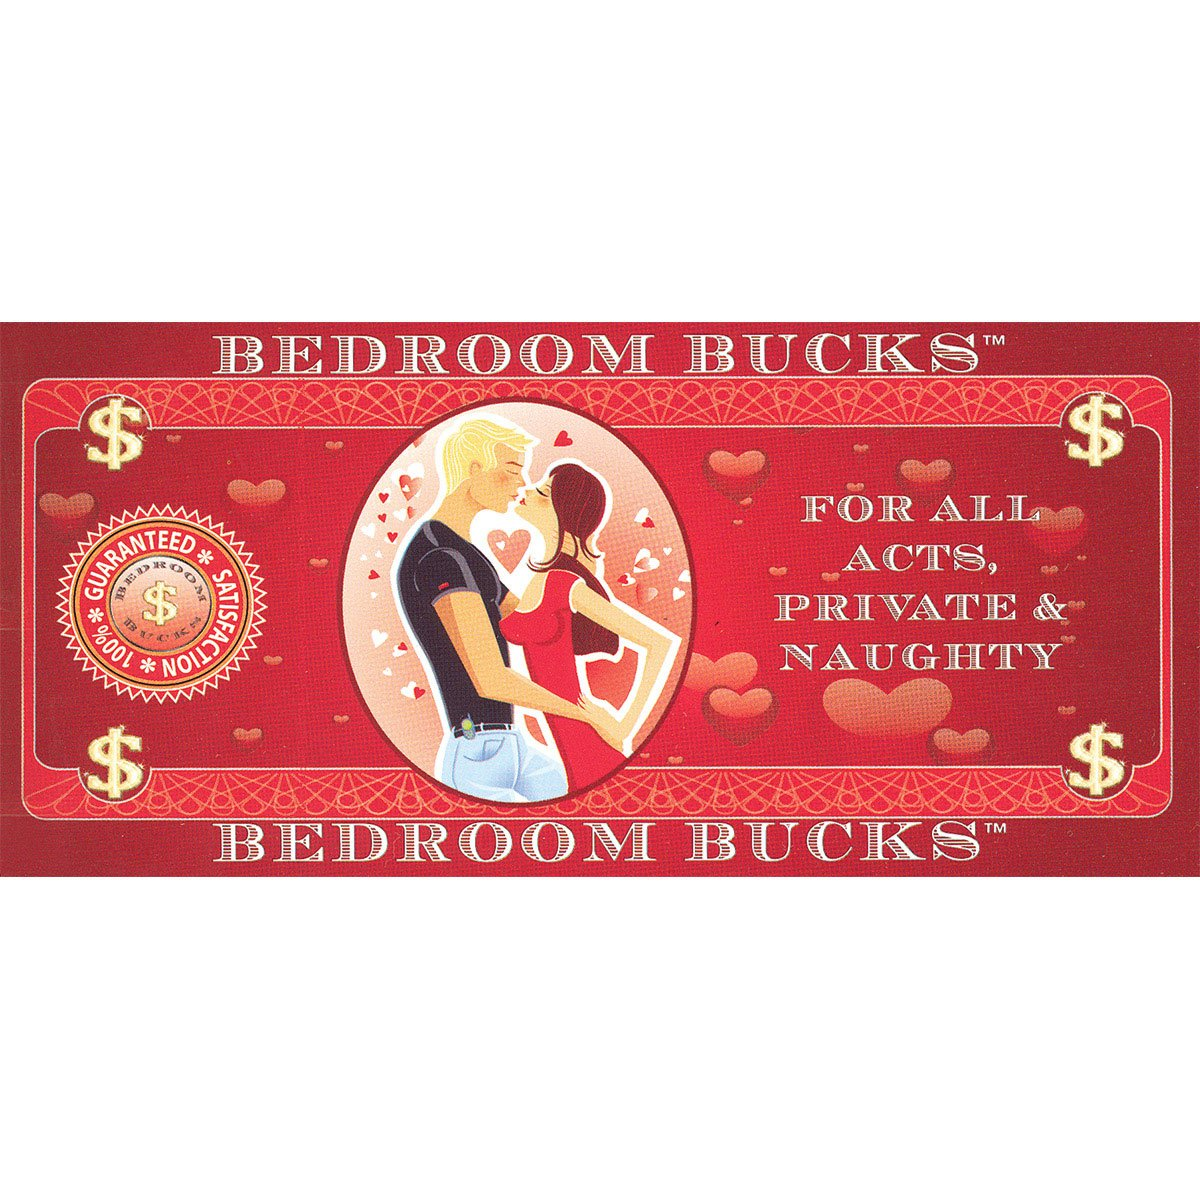 Bedroom Bucks Coupons